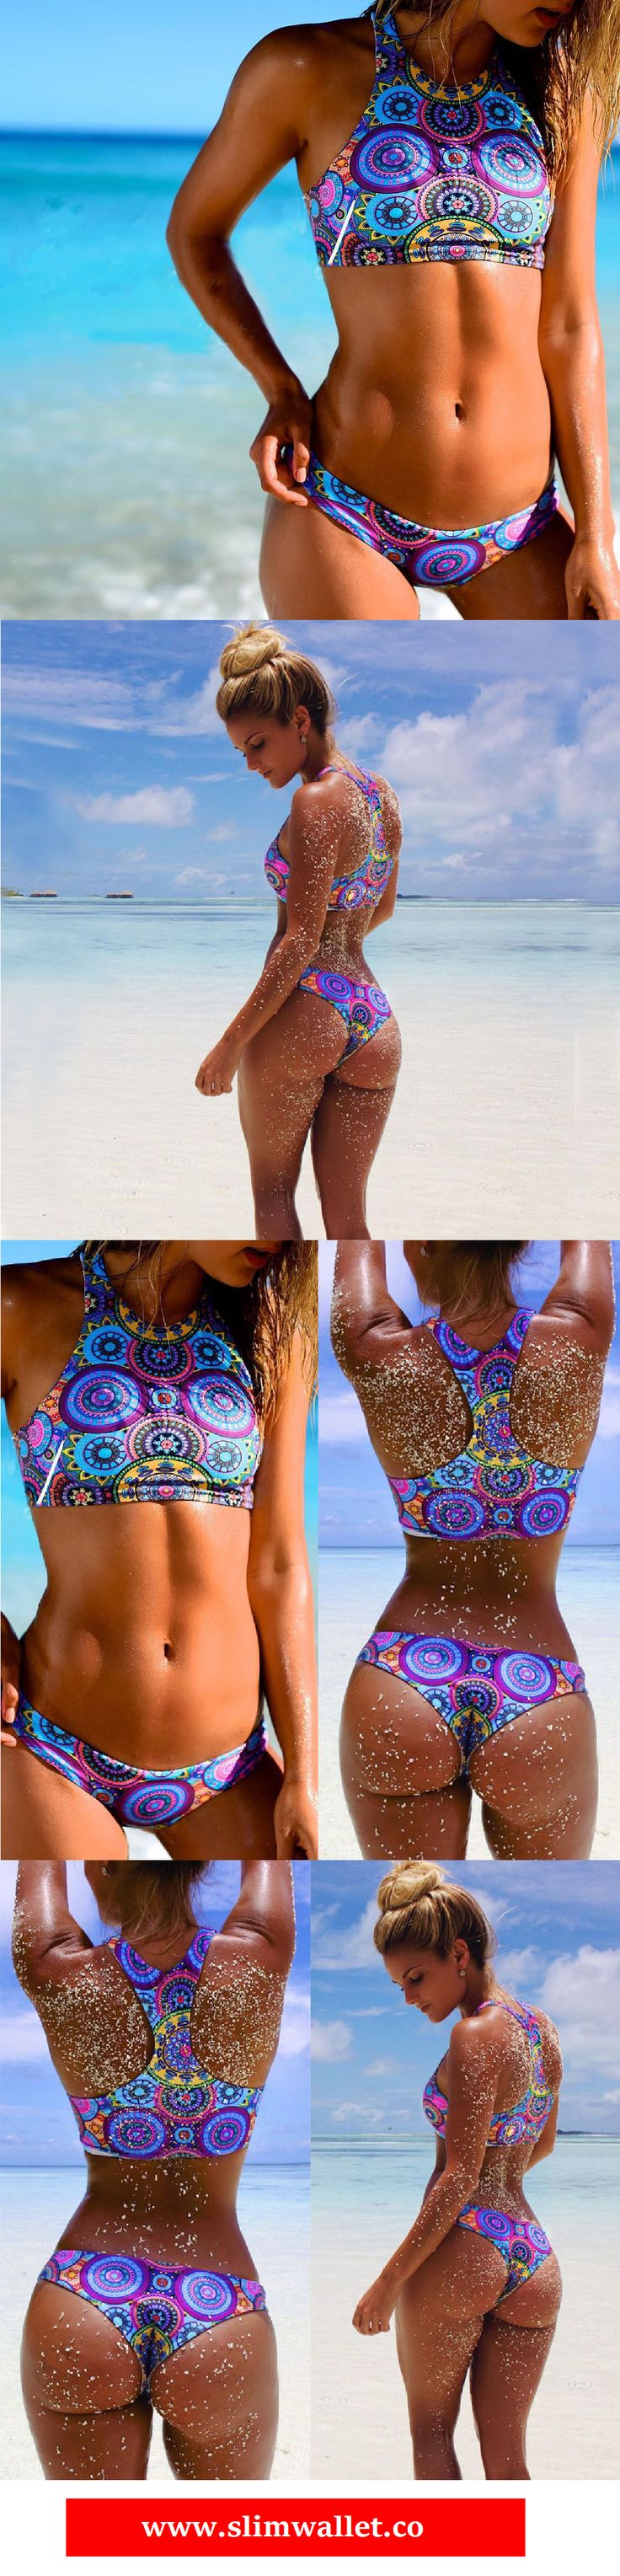 Sun, sand and the perfect swimsuit!!